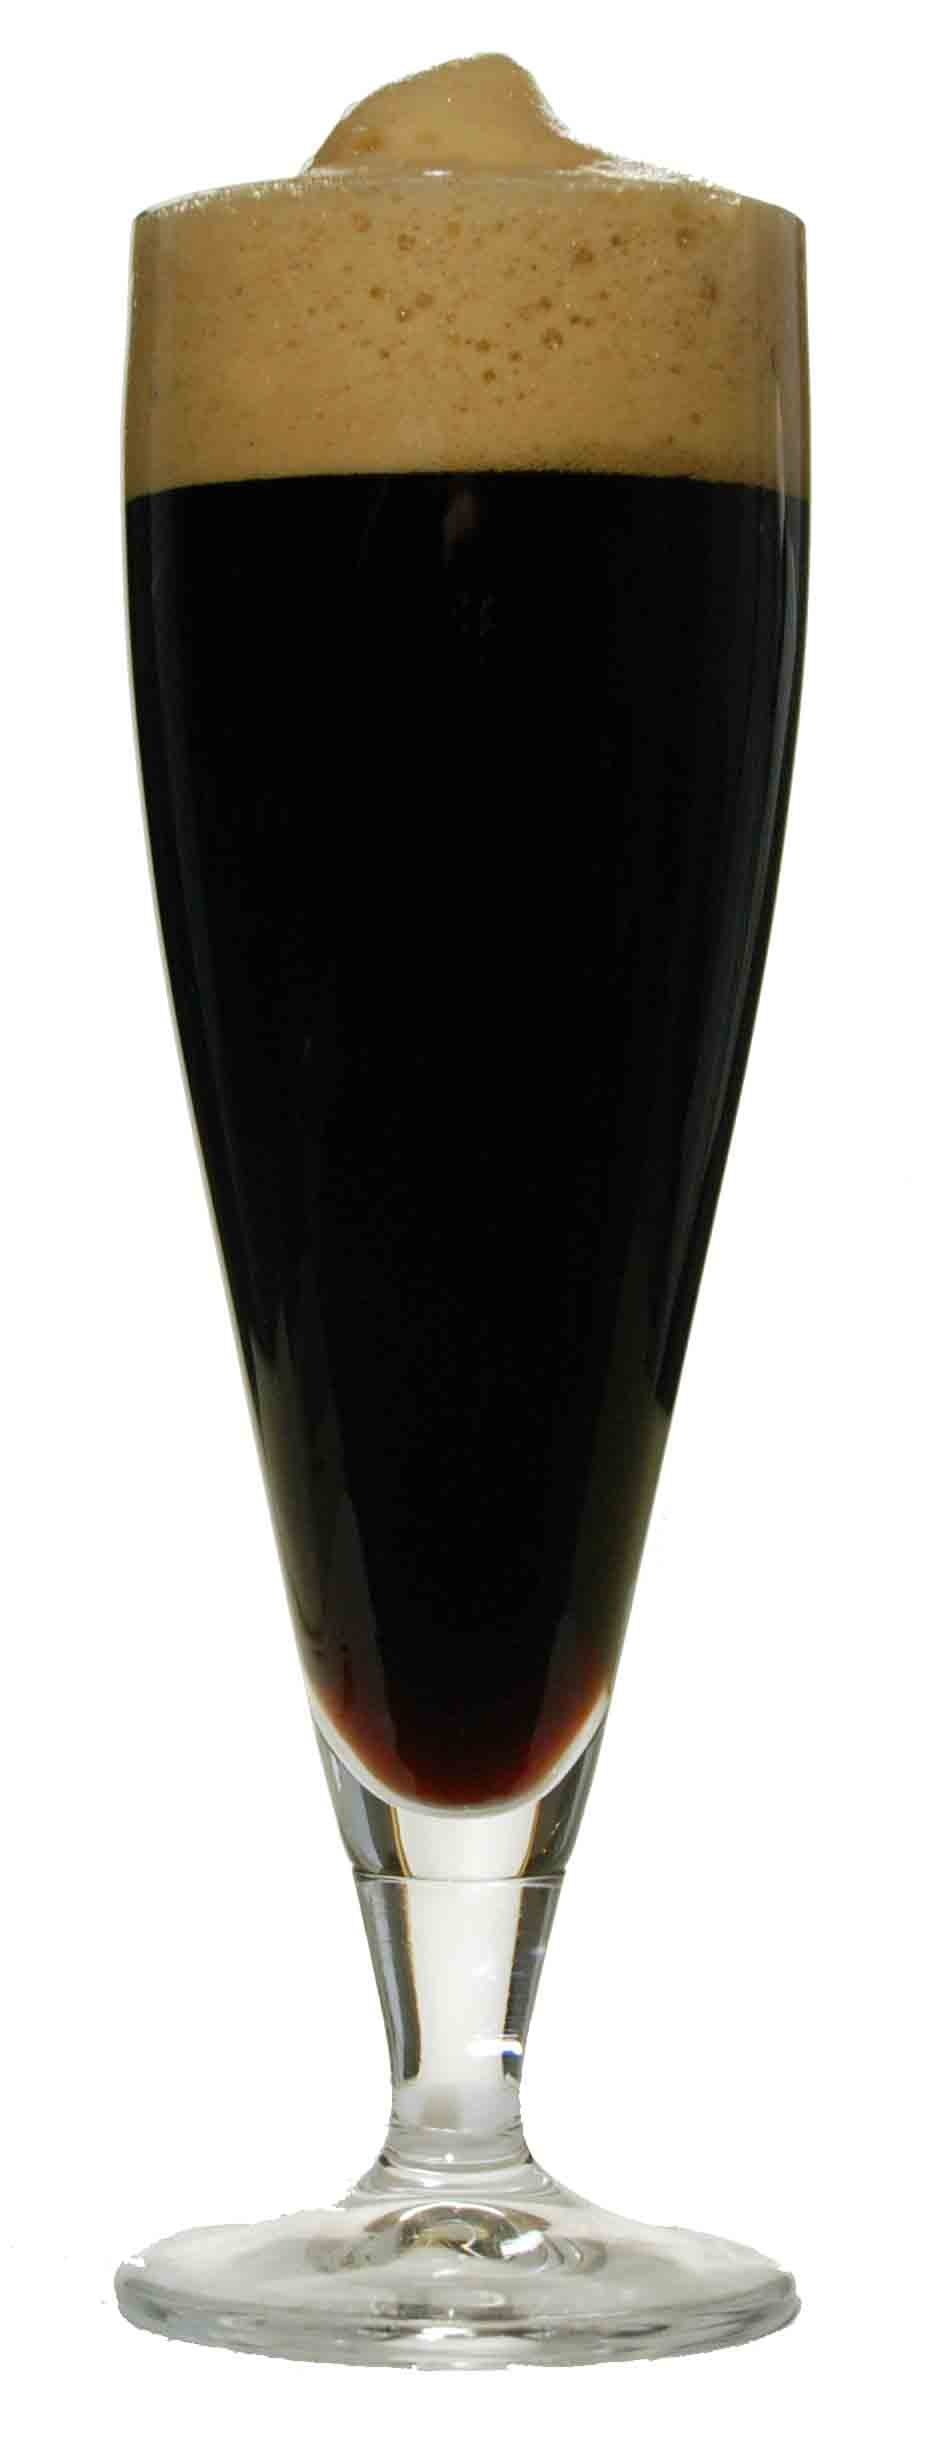 Charbuck's Black Coffee & Cream Stout All Grain